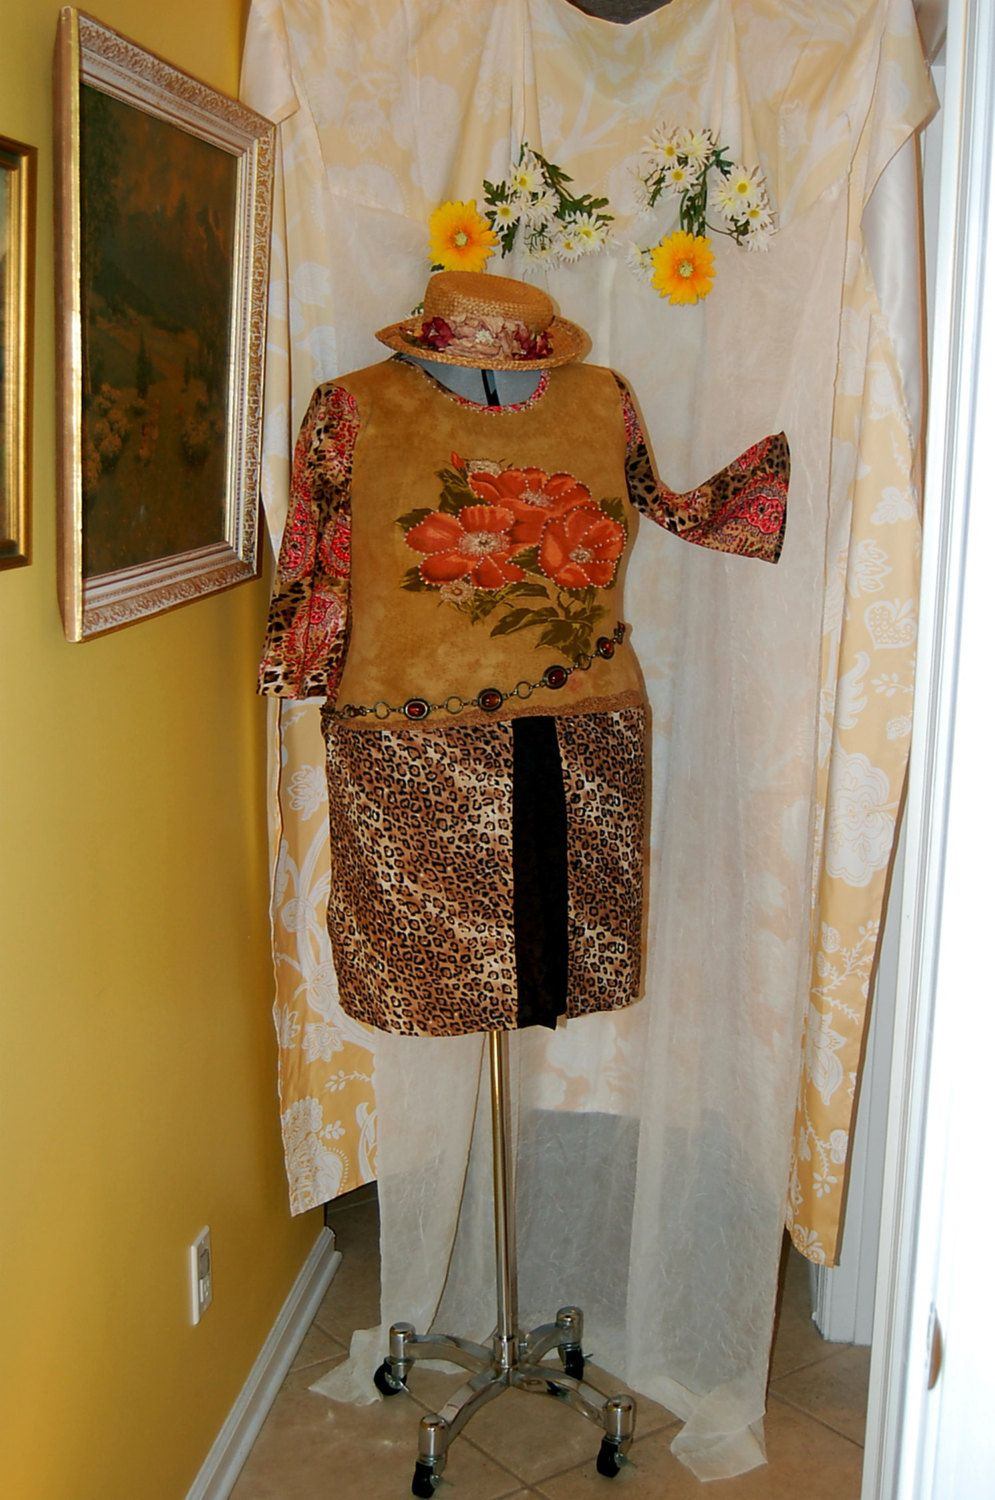 plus size free ship L-XL leopard floral paisley tunic eyelet lace sequins refashioned restyled altered upcycled boho top knit by RestyledBohoPlus on Etsy https://www.etsy.com/listing/235916022/plus-size-free-ship-l-xl-leopard-floral